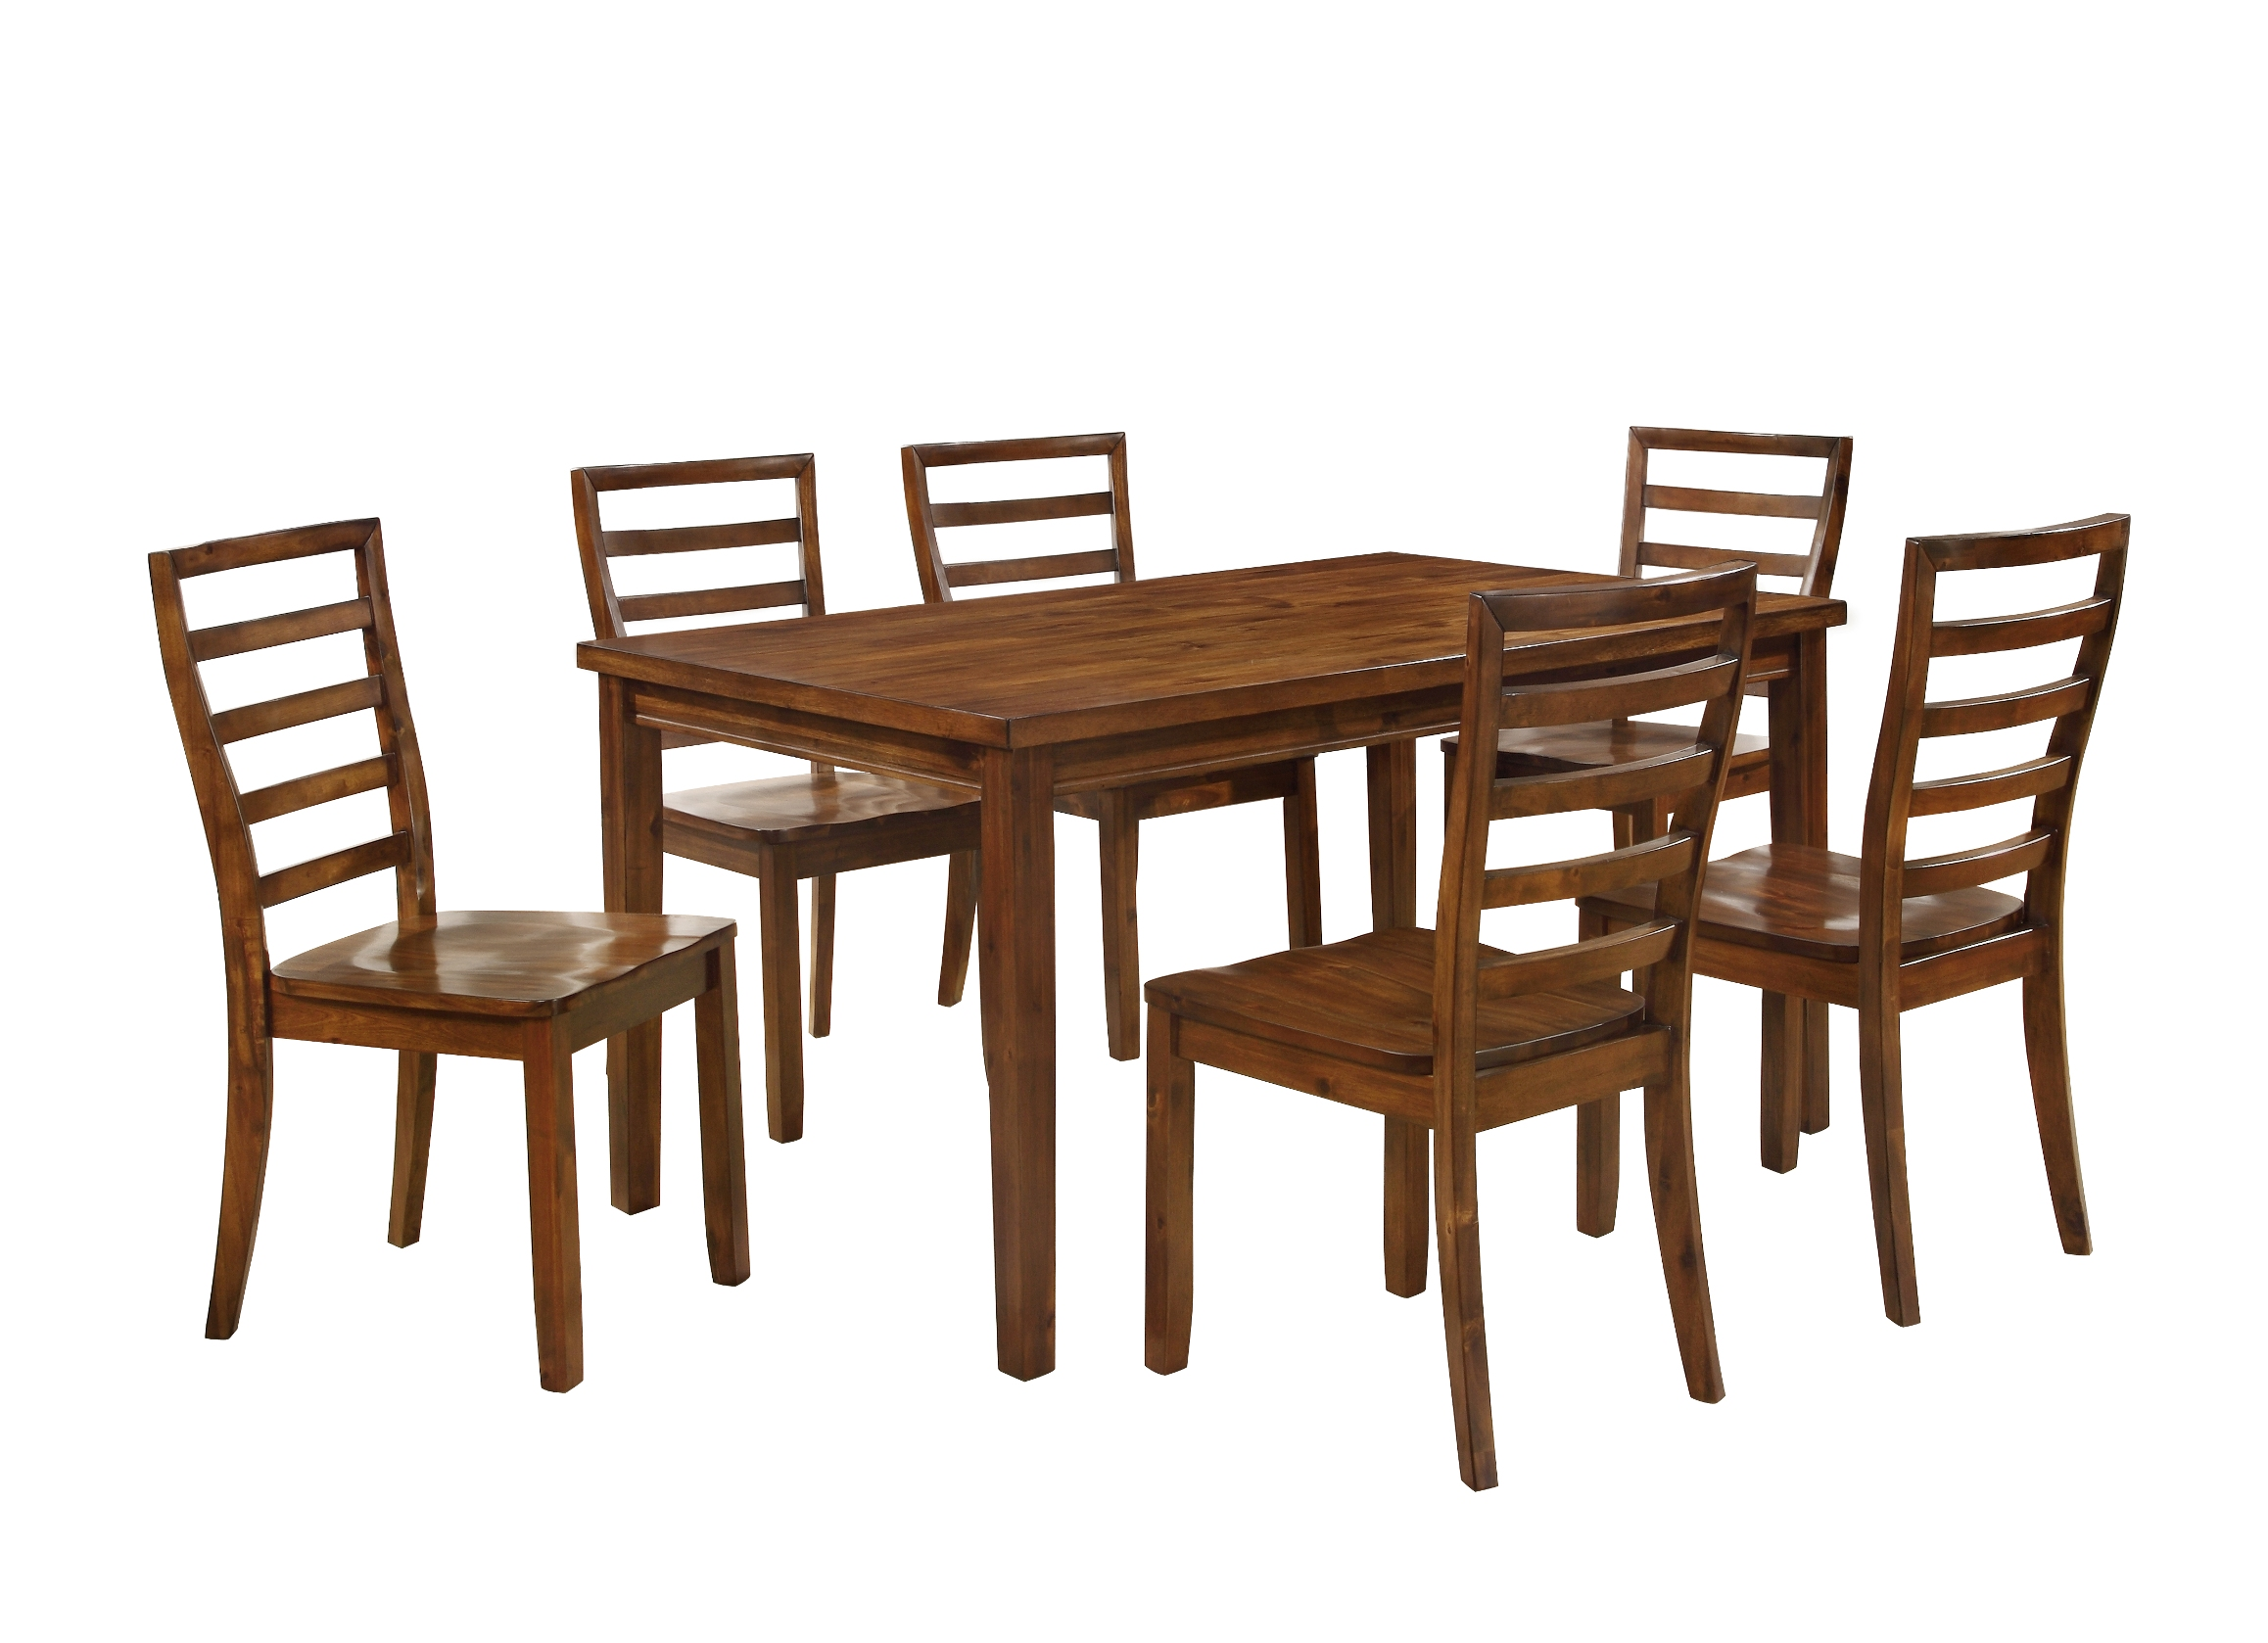 outdoor chairs kmart ikea butterfly chair barrington 7-piece dining set